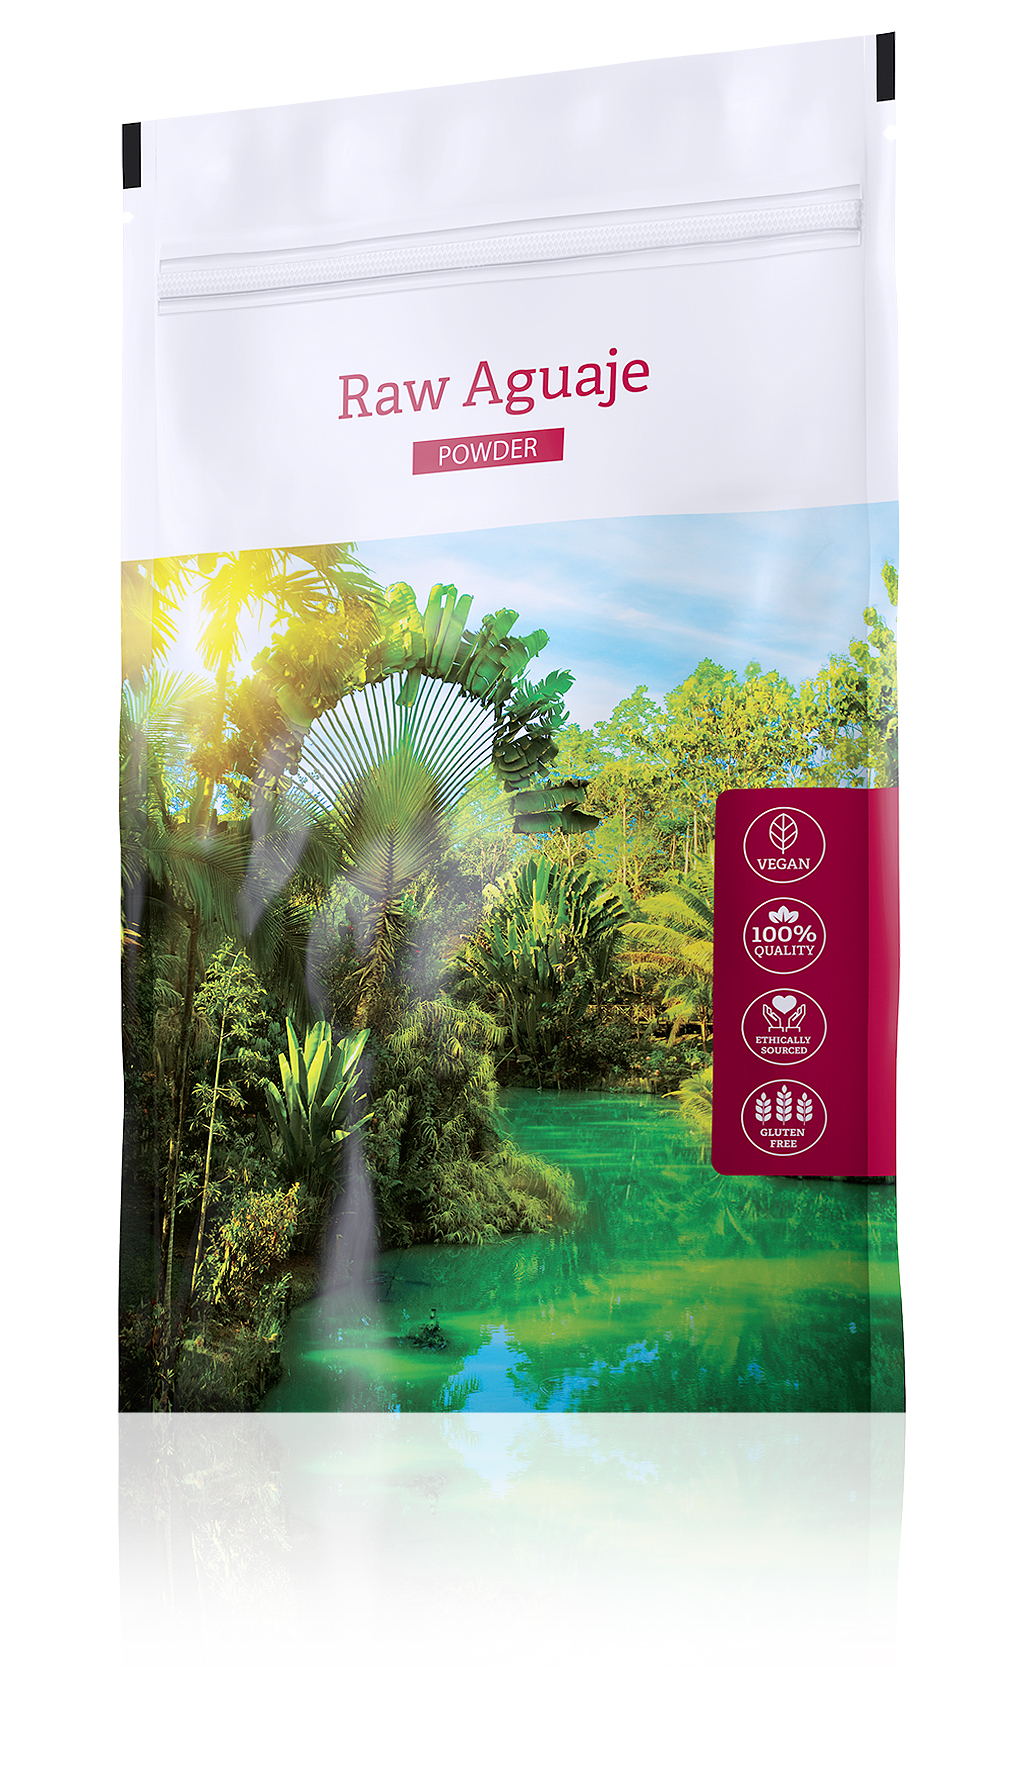 Raw_aguaje_powder_300dpi